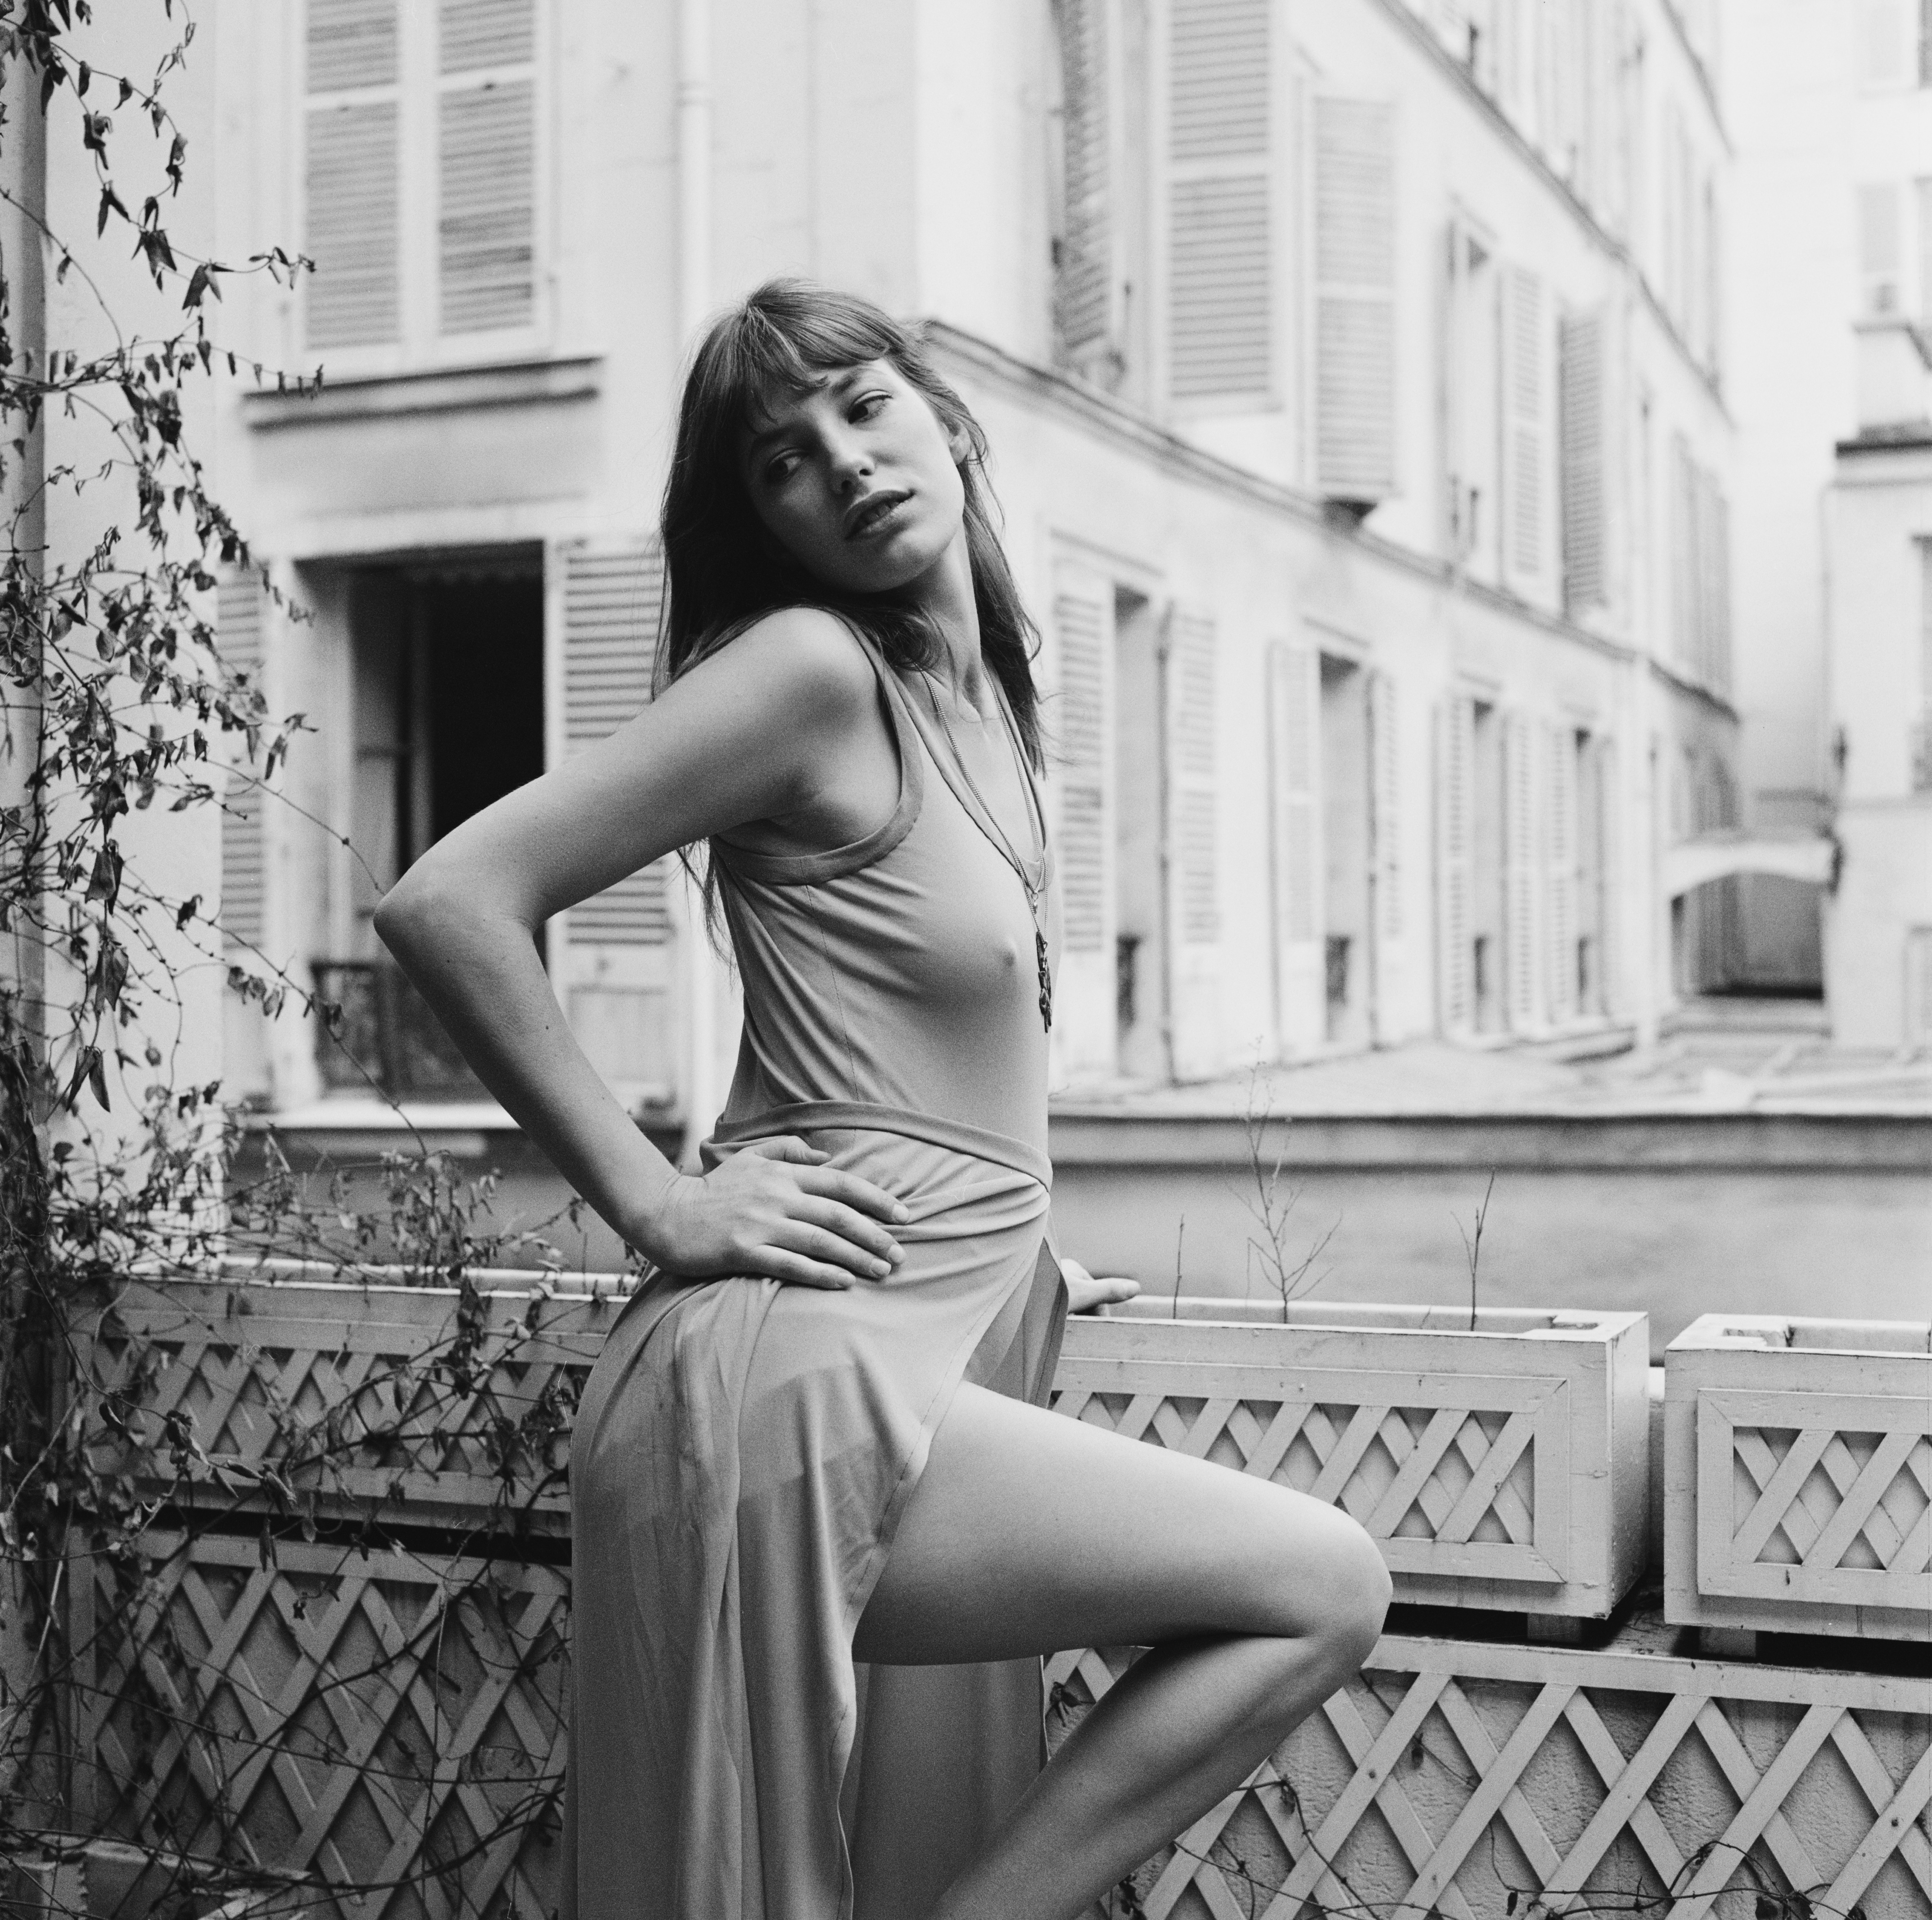 Jane Birkin © Getty Images